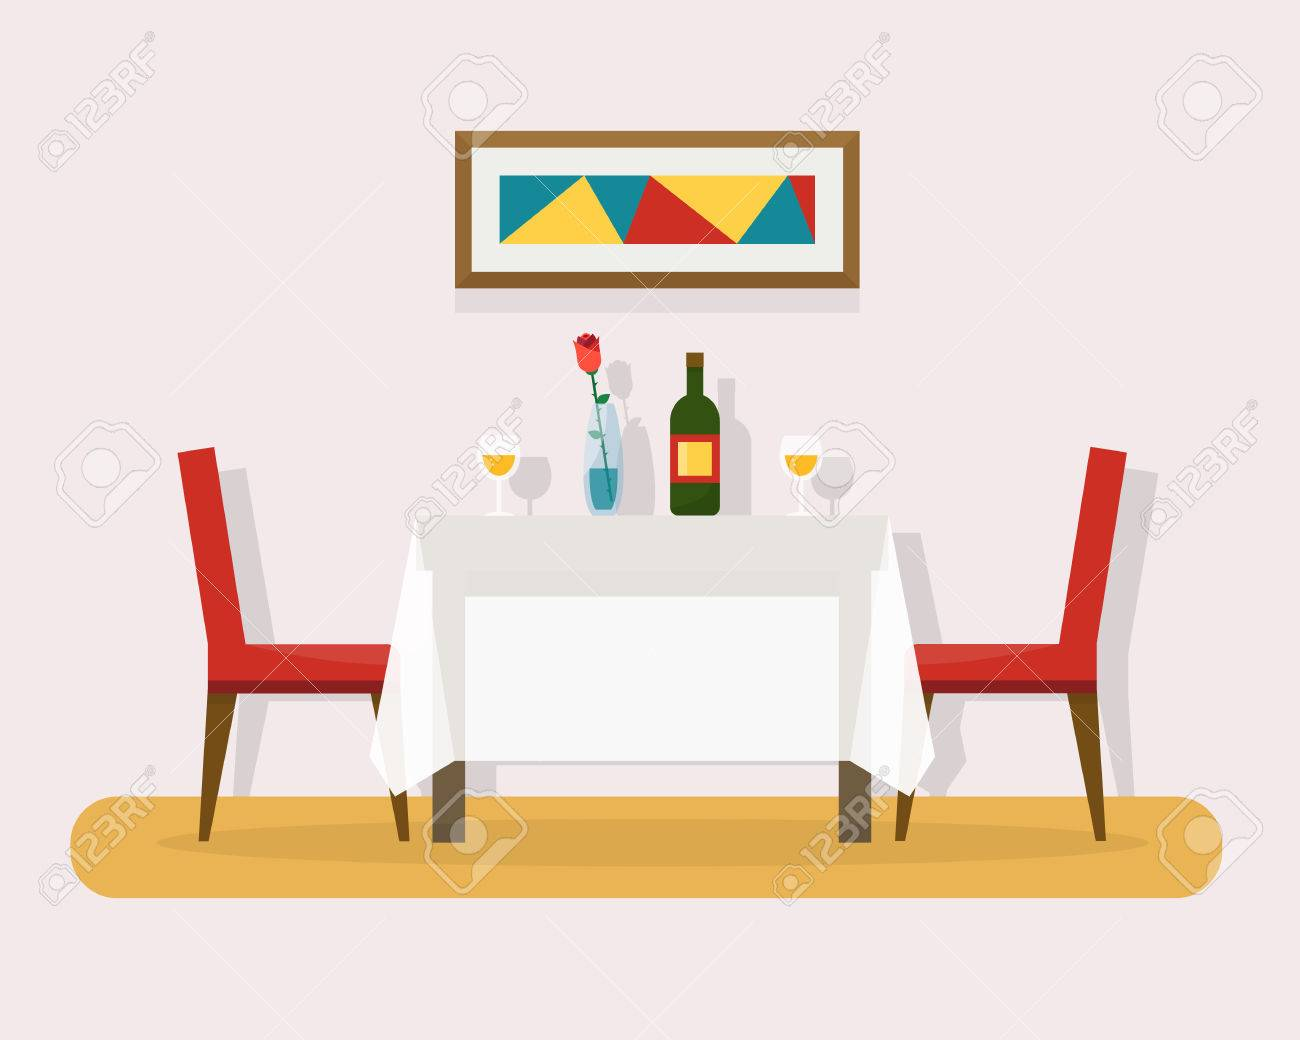 Dining Table For Date With Glasses Of Wine Flowers And Chairs Flat Style Vector